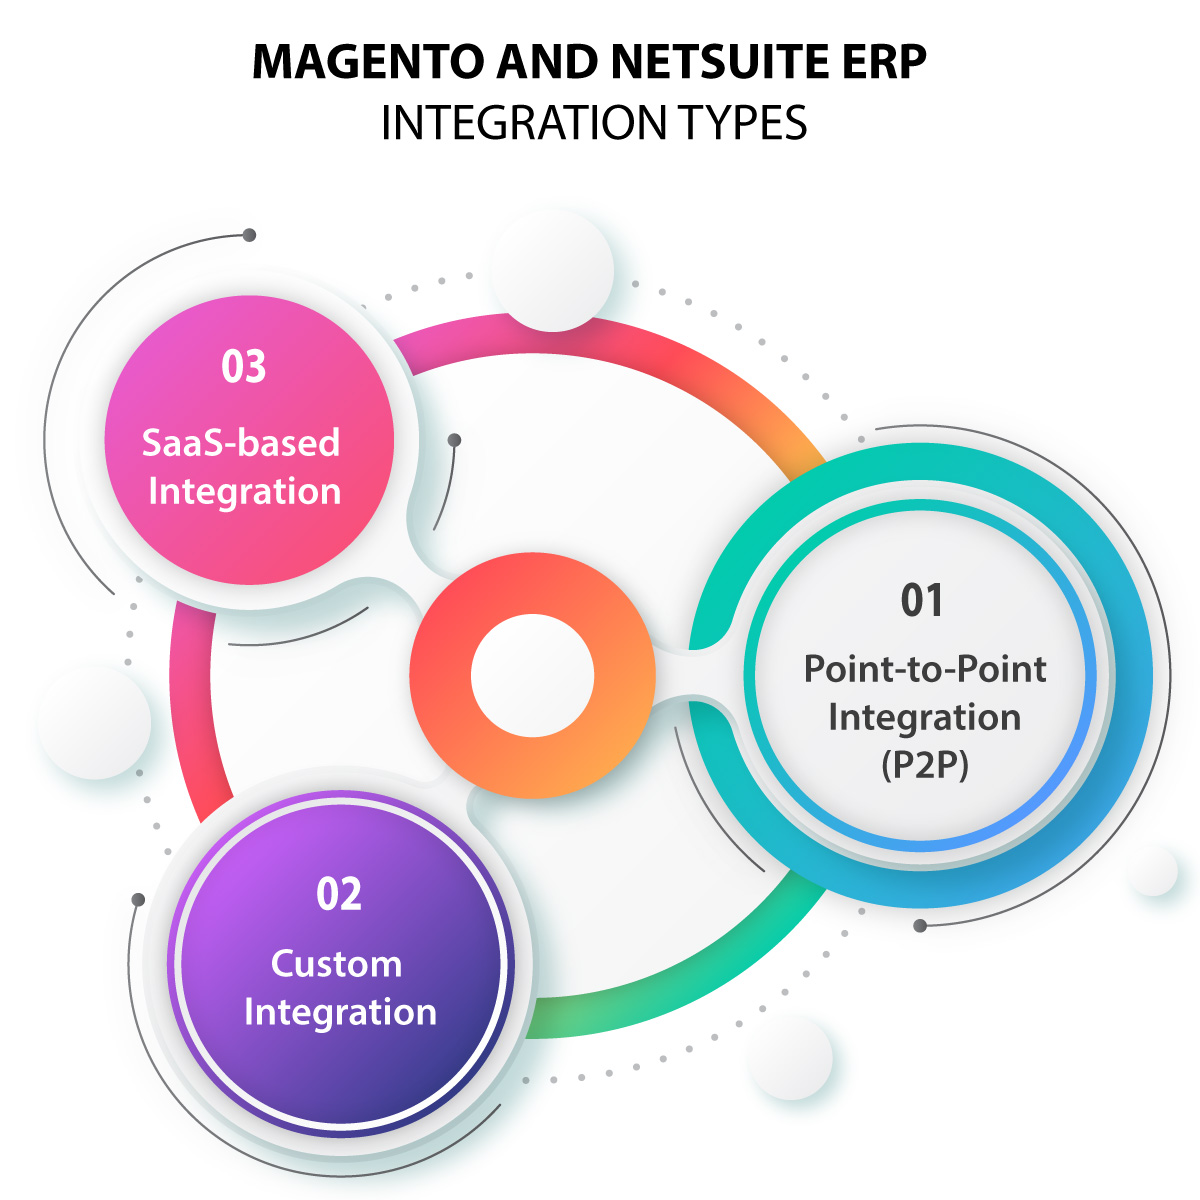 Ways To Integrate Magento and NetSuite ERP